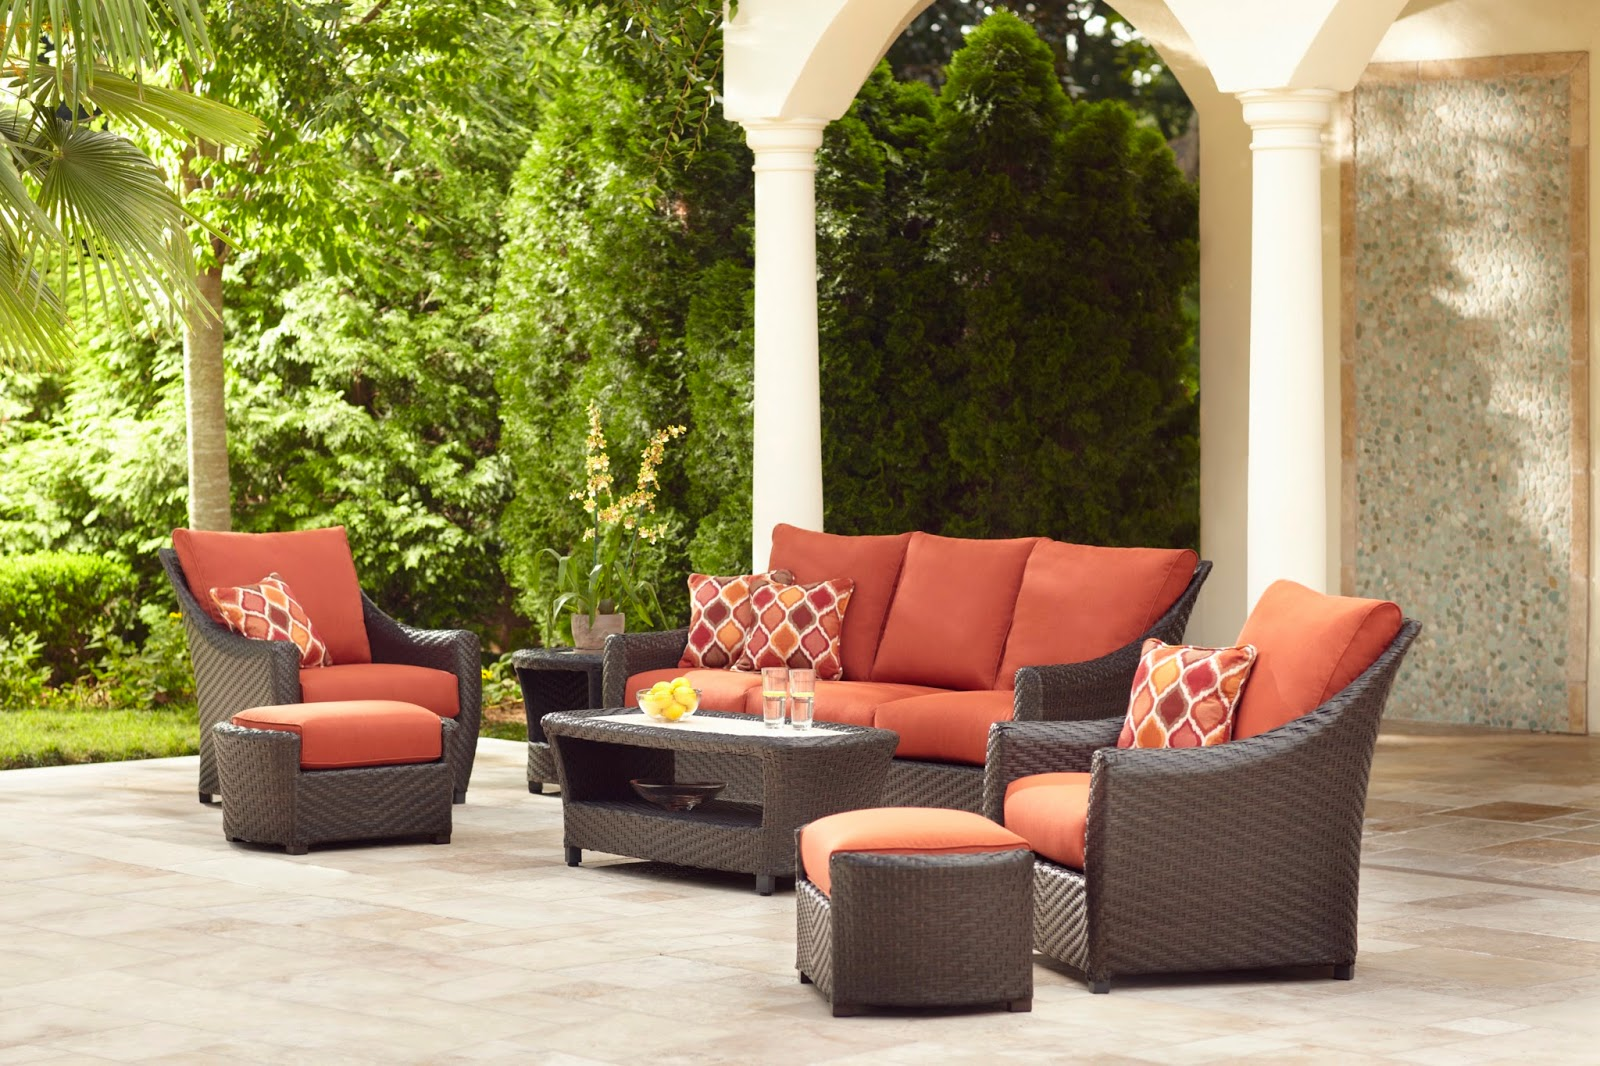 the highland collections curved arms and a flared back that project a sense of ease and elegance featuring outdoor seating outdoor chat motion lounge brown jordan northshore patio furniture